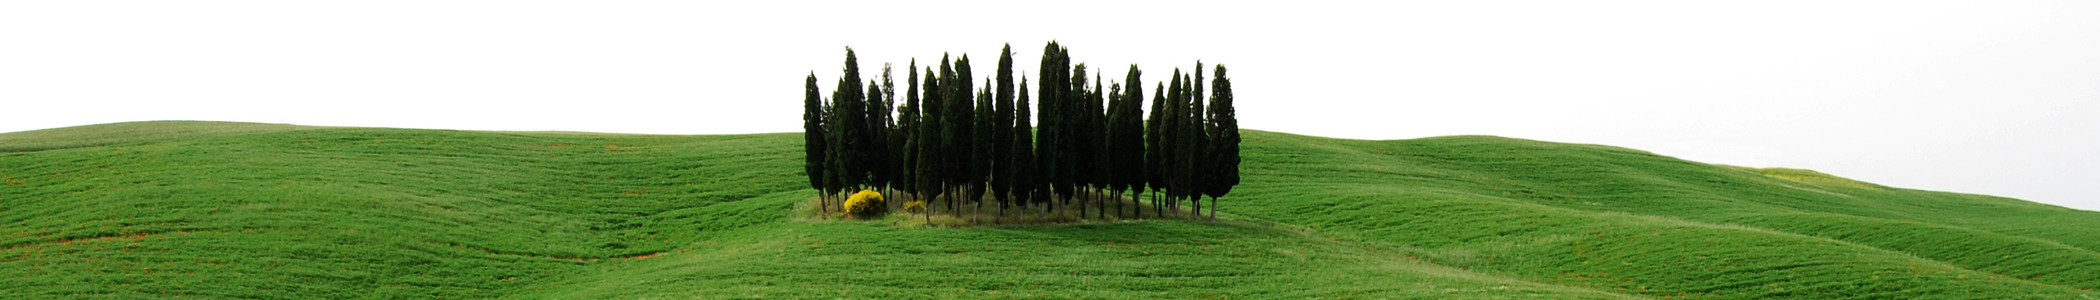 Toscana_banner_Copse_in_agricultural_fields